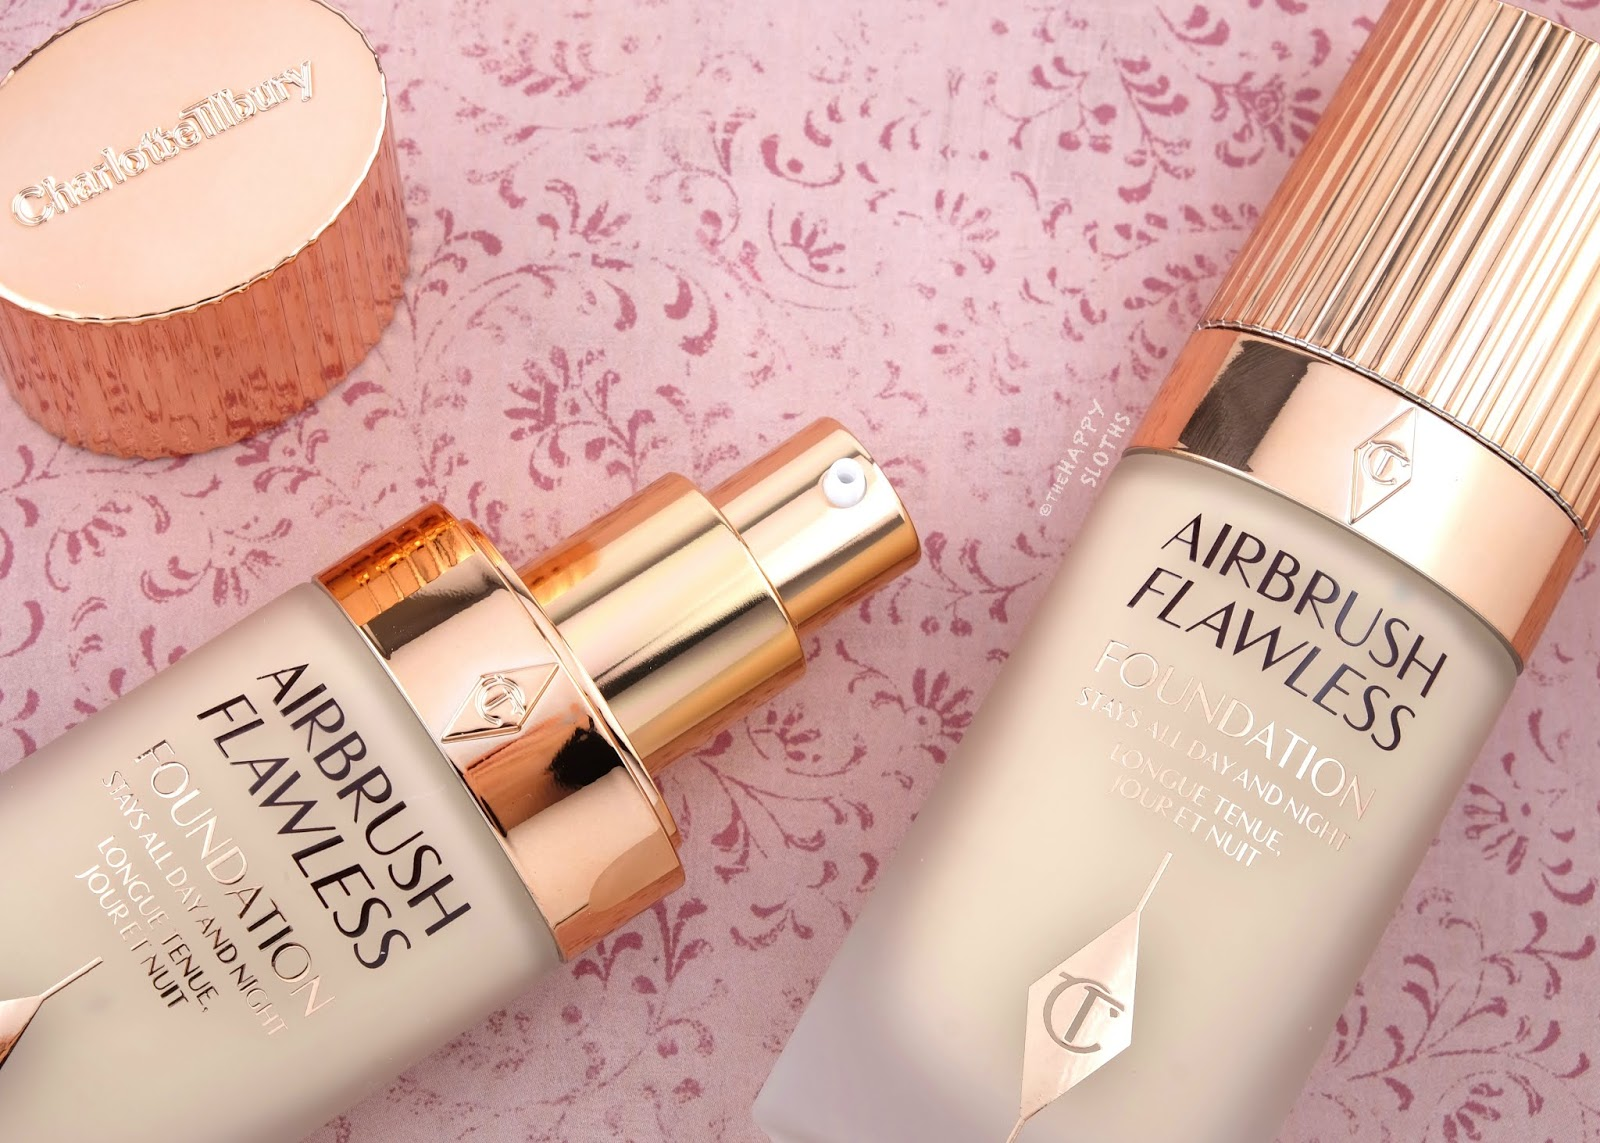 Charlotte Tilbury | Airbrush Flawless Foundation: Review